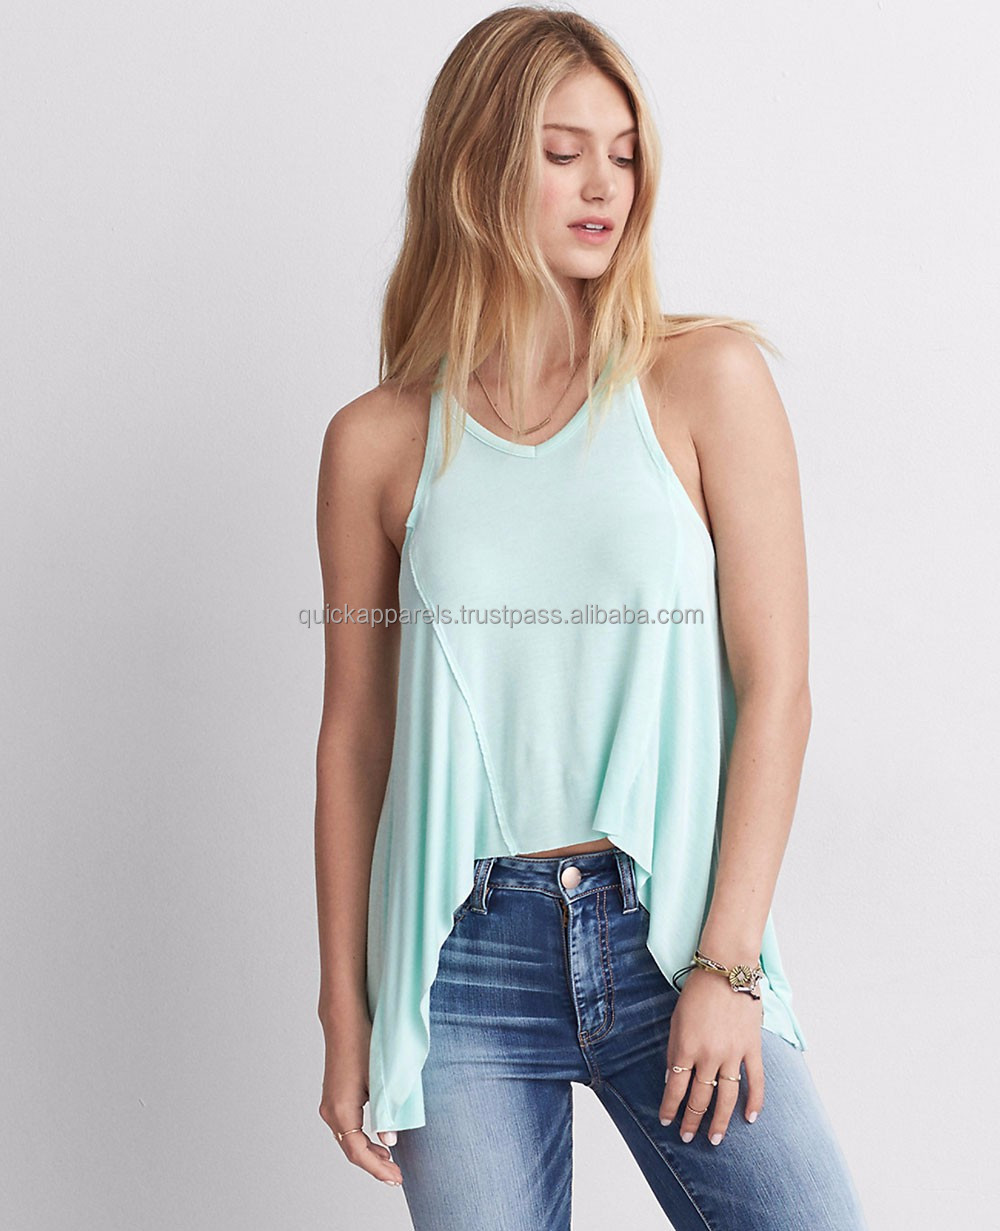 The factory price wholesale women tank tops, plain tank tops,African dashiki tops